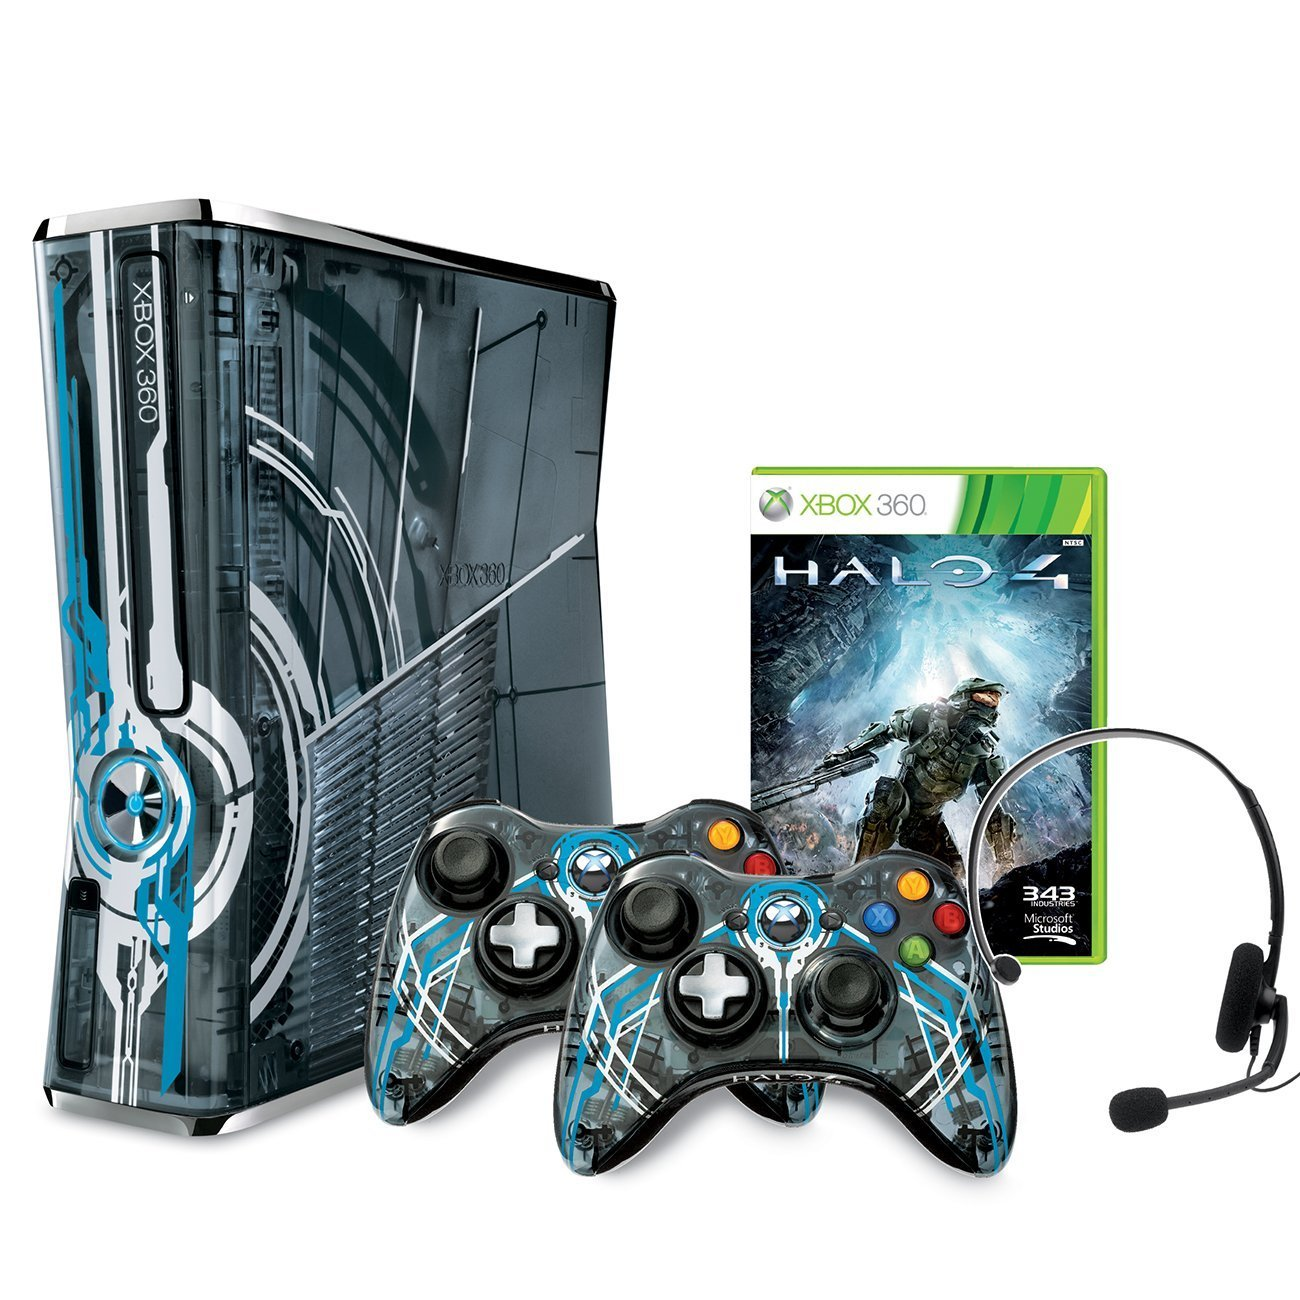 Image result for x360 halo edition